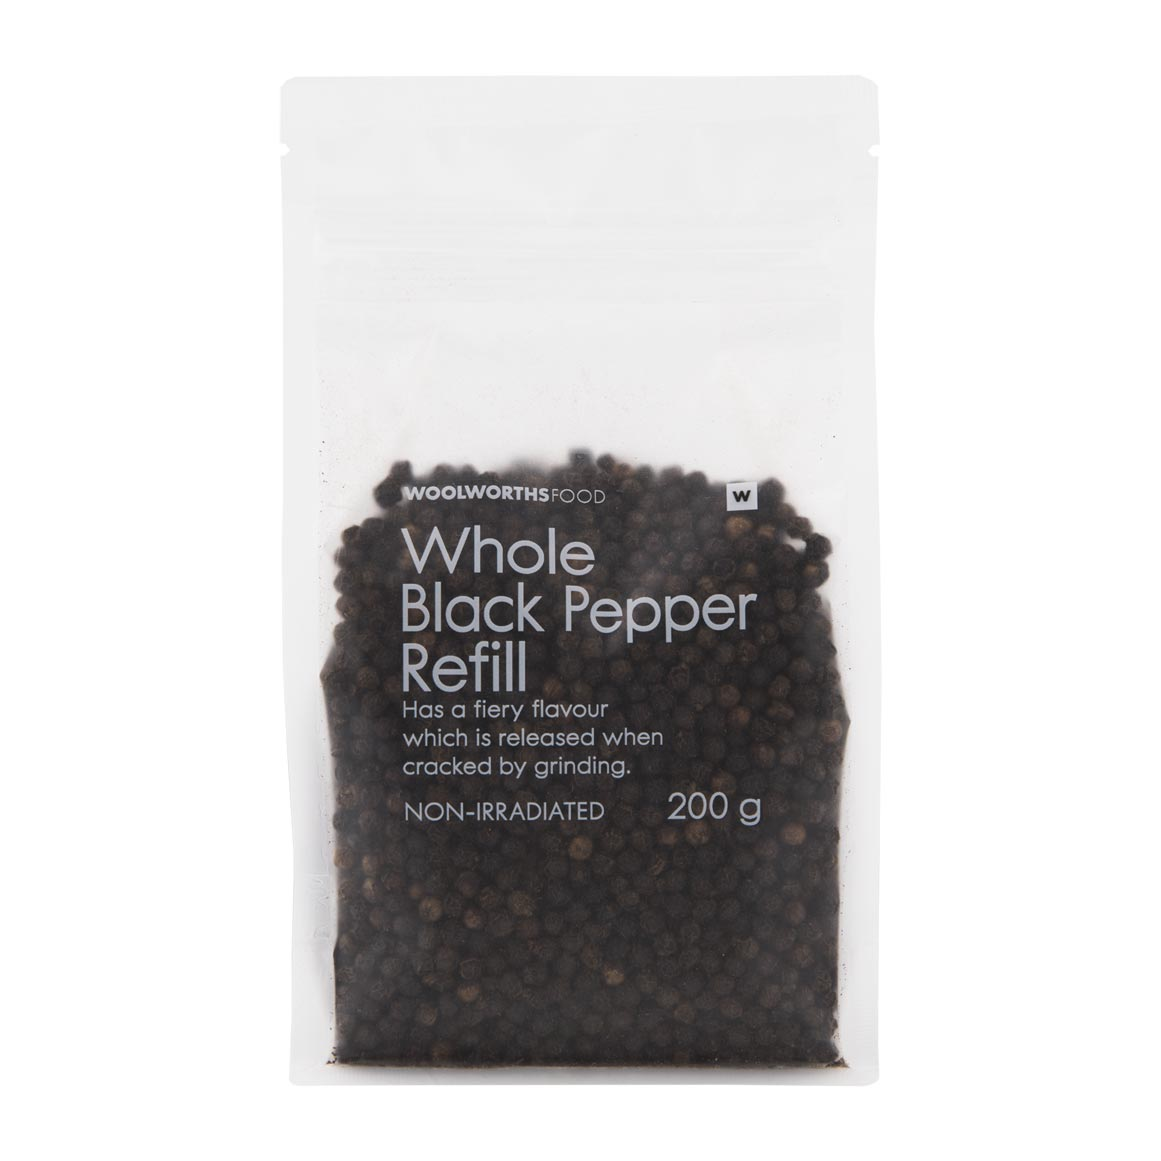 Whole Black Pepper Refill 200g Woolworths Co Za